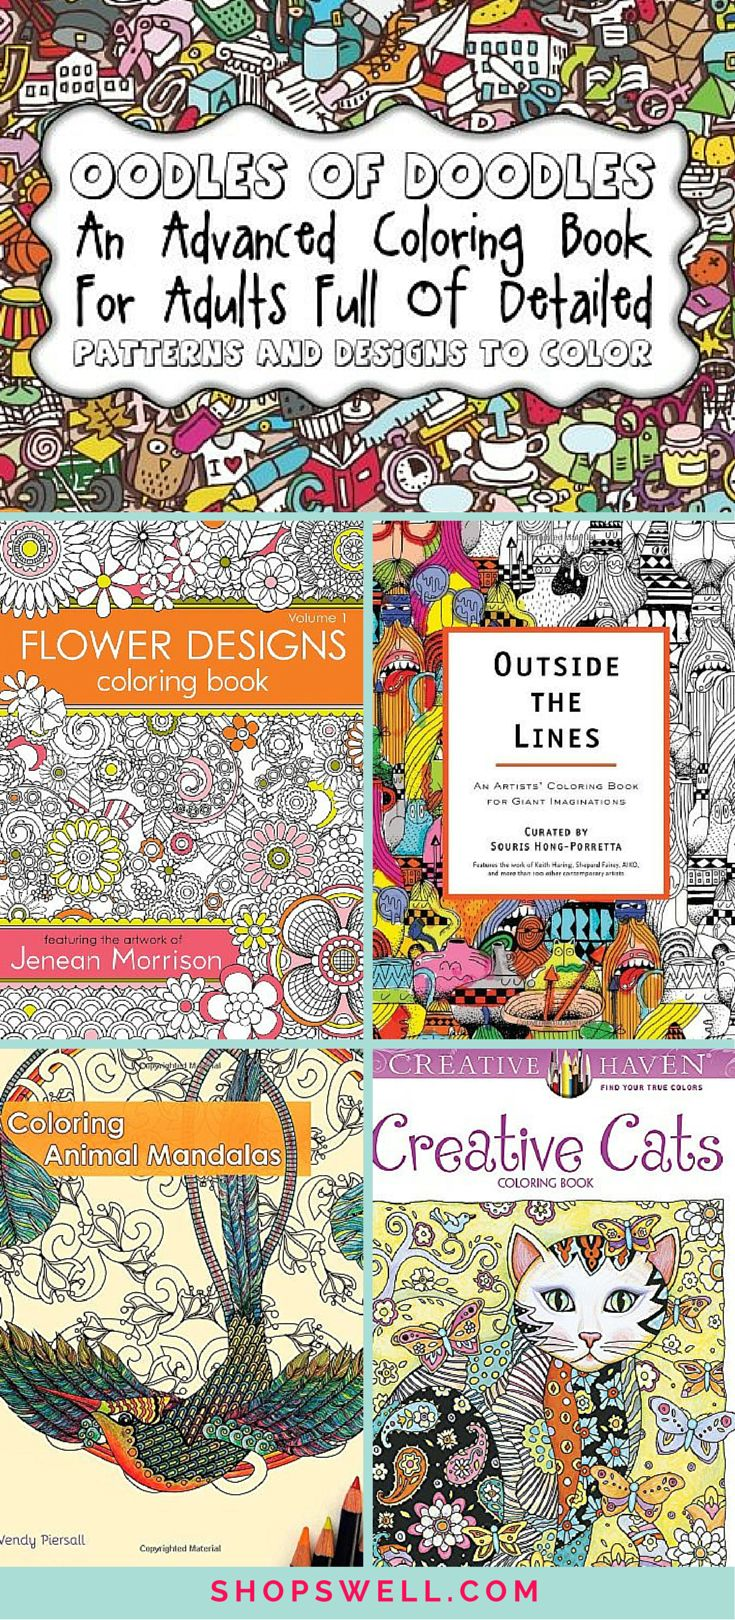 Galerry coloring books for adults national bookstore